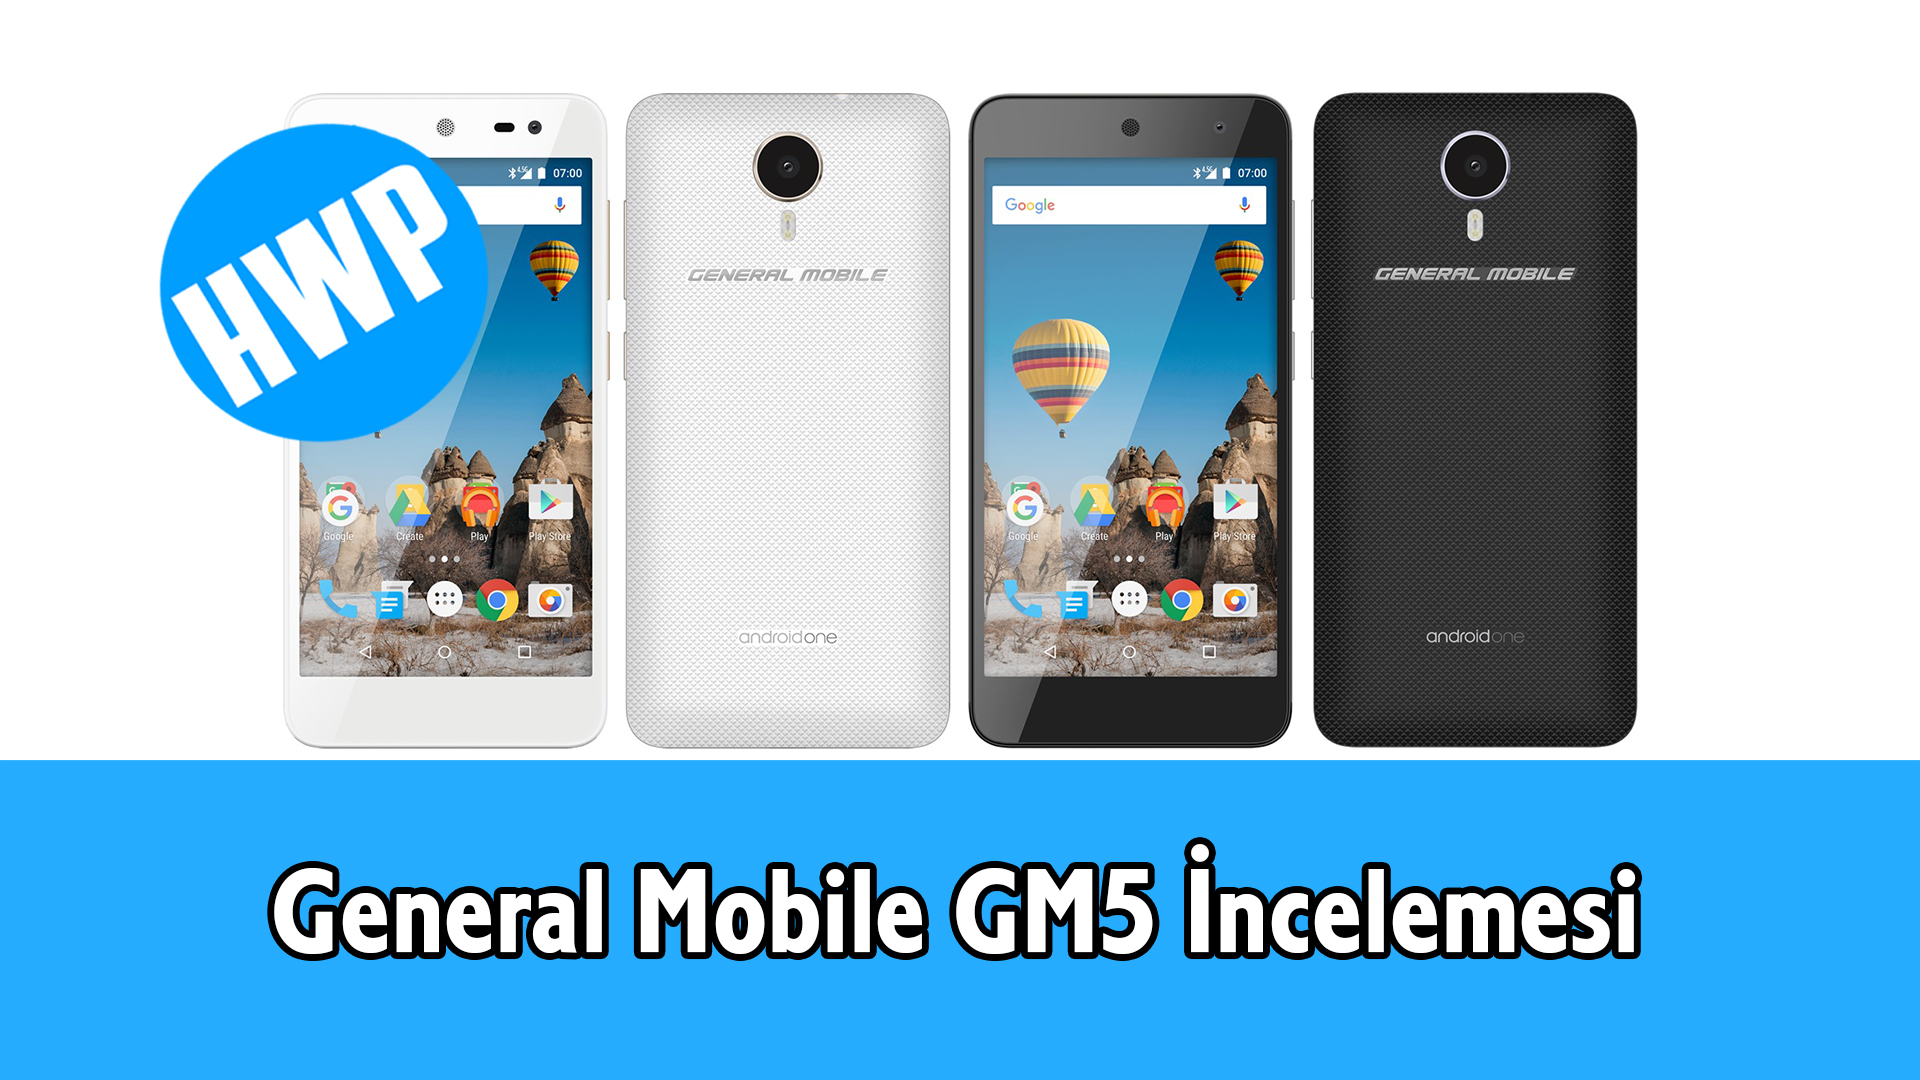 General Mobile GM5 İnceleme Video Android One 7.0 Nougat